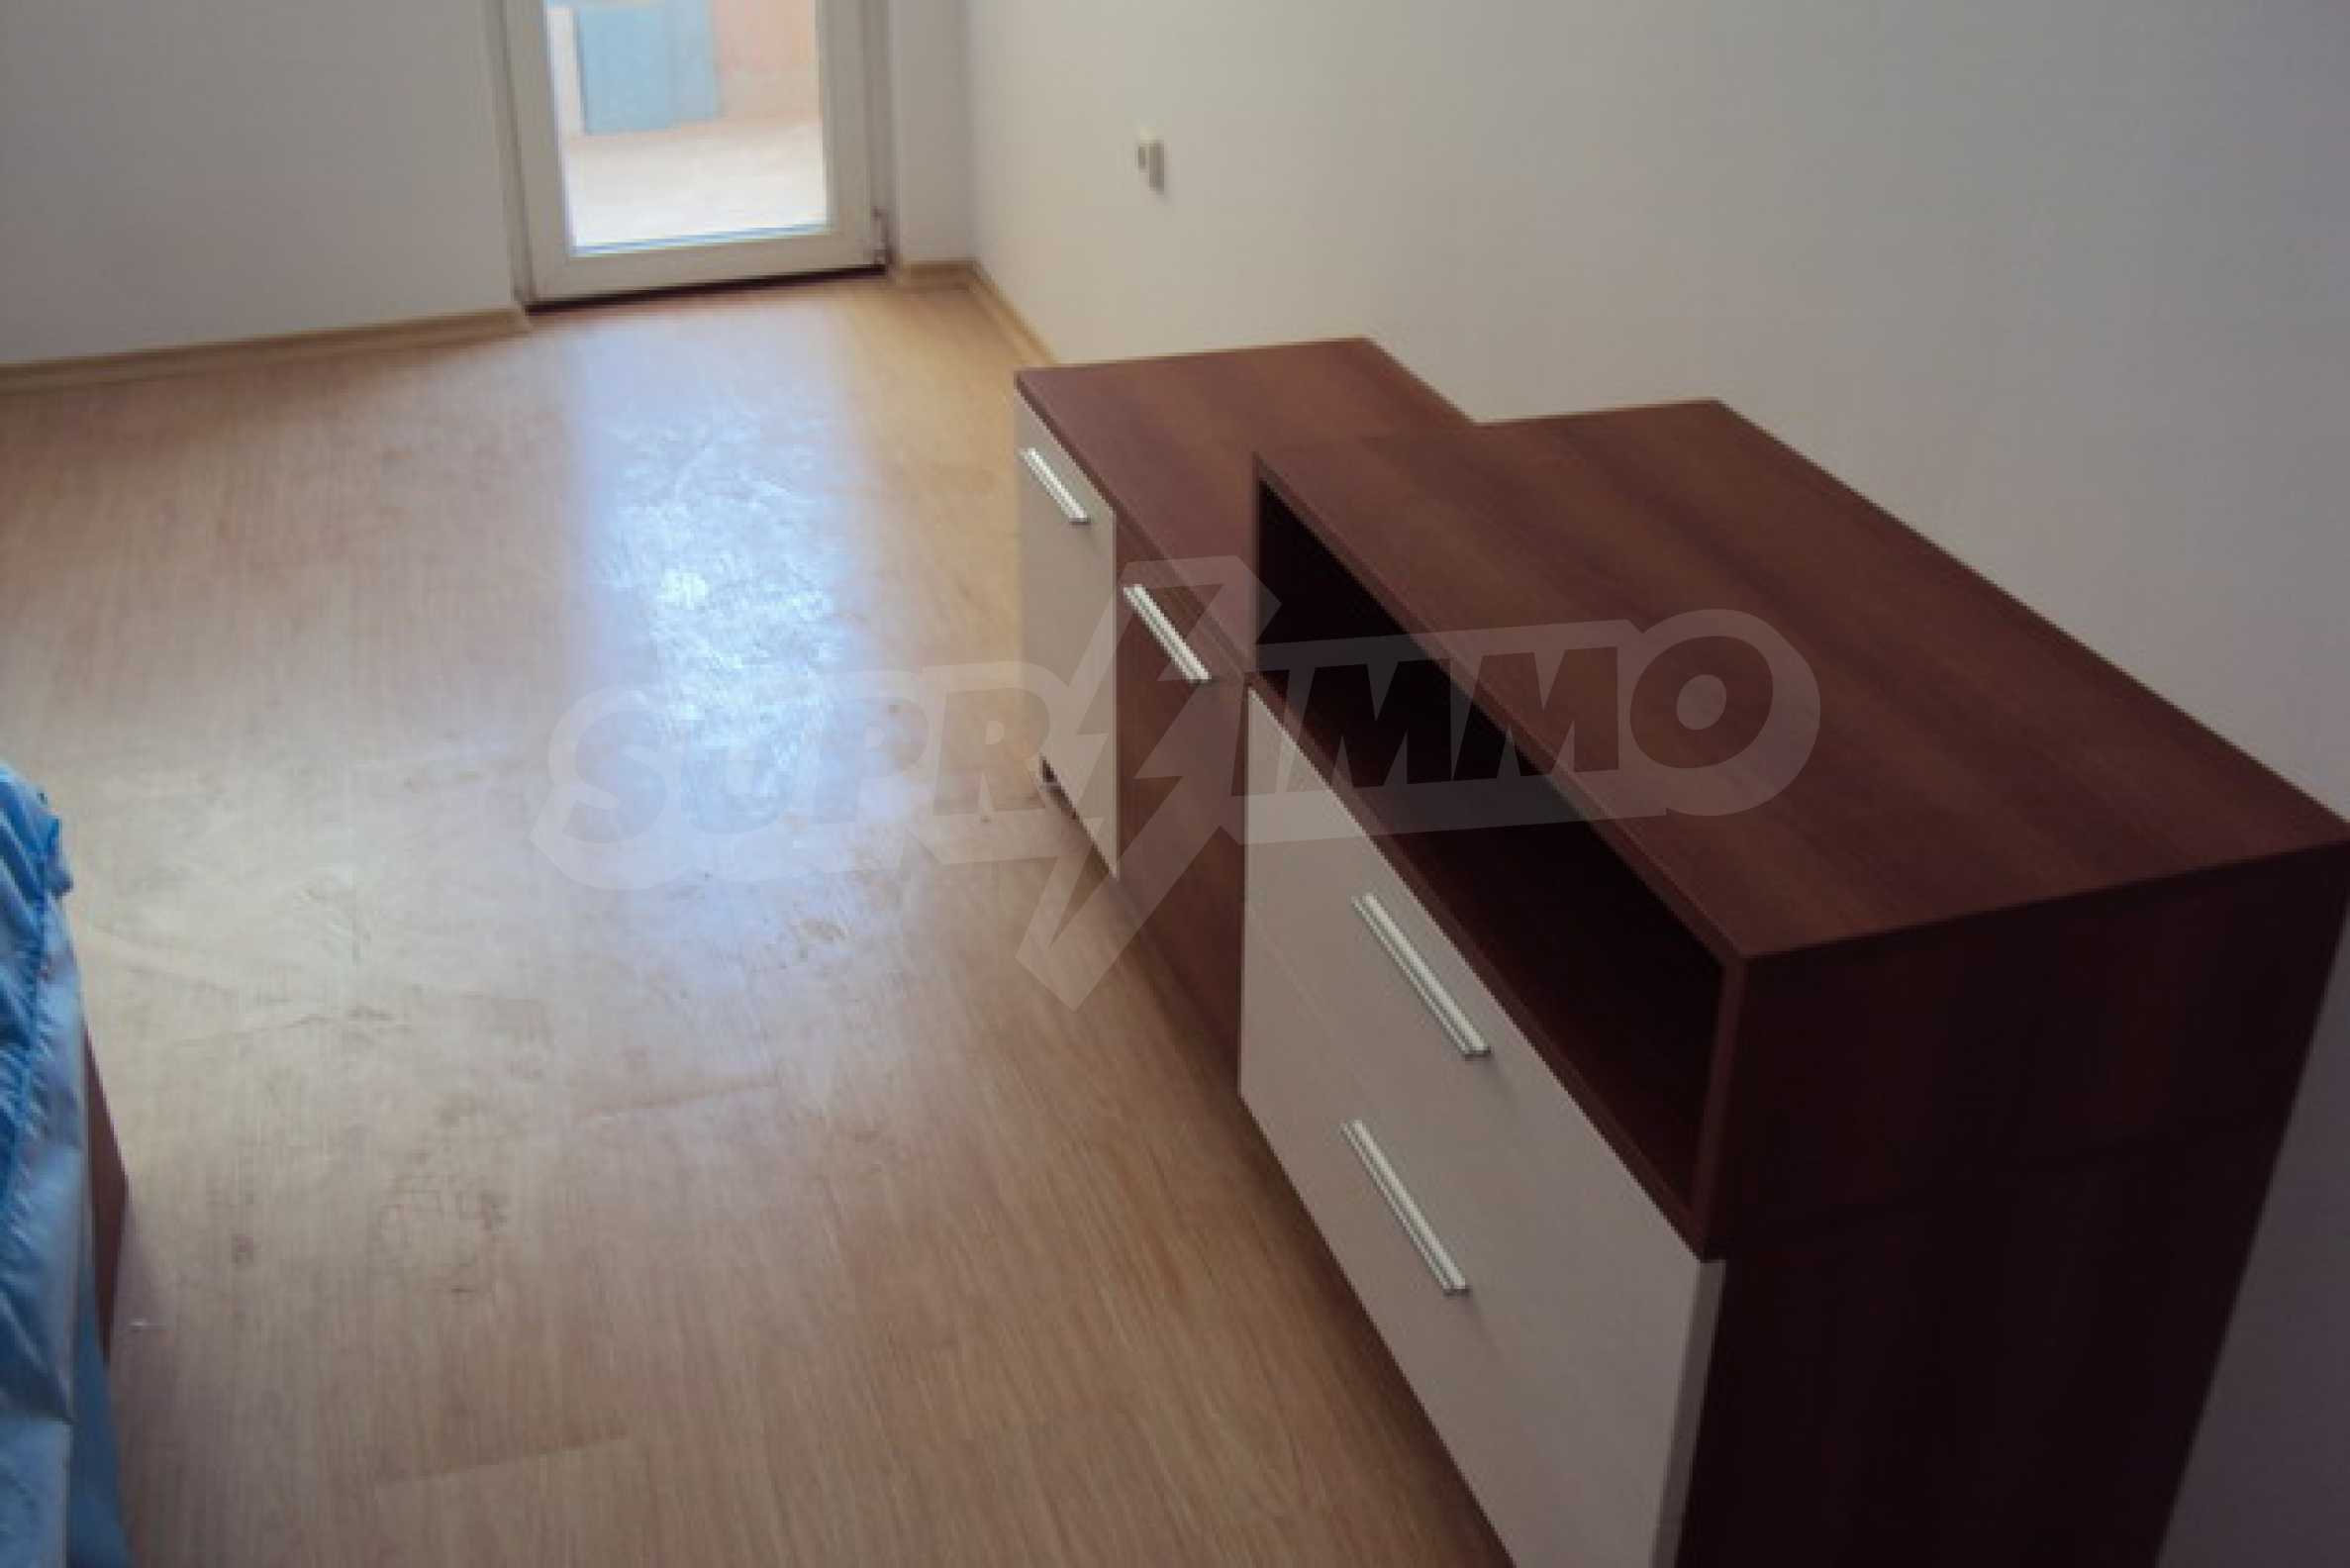 One bedroom apartment with good location for rent in Veliko Tarnovo 13